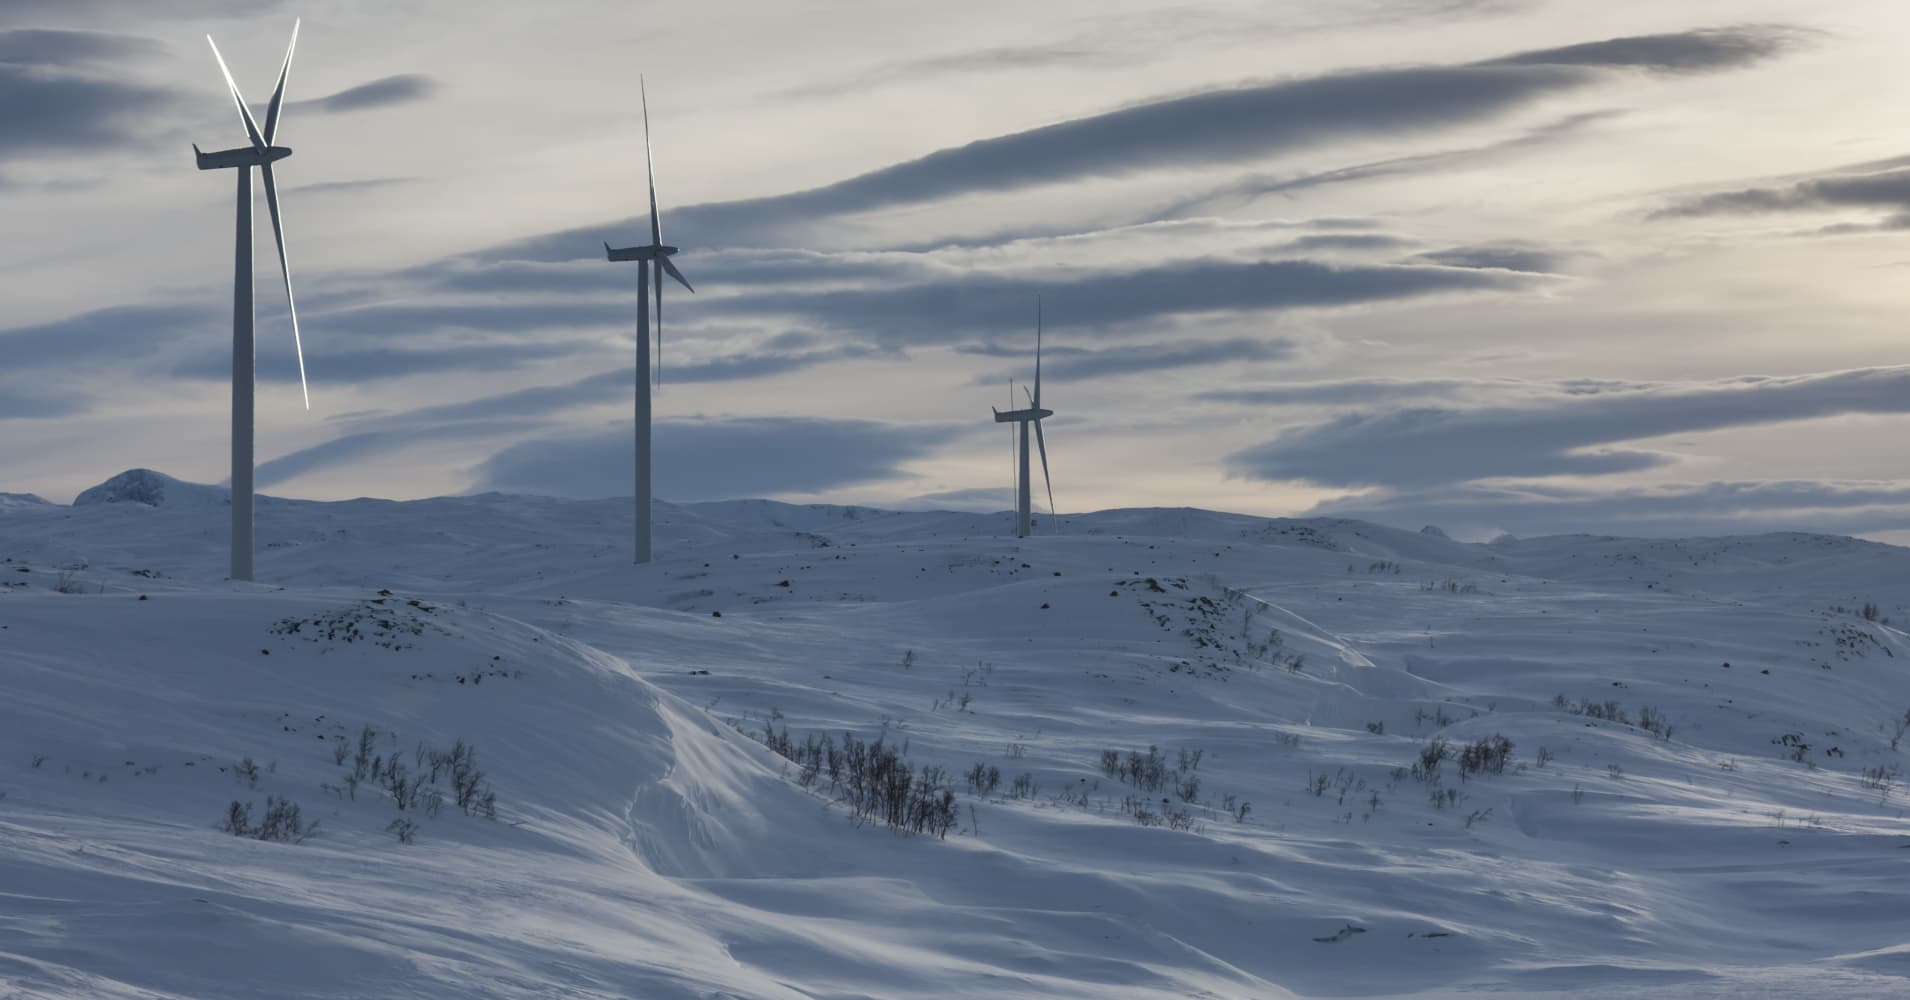 E.ON announces plans to build large onshore wind farm in Sweden